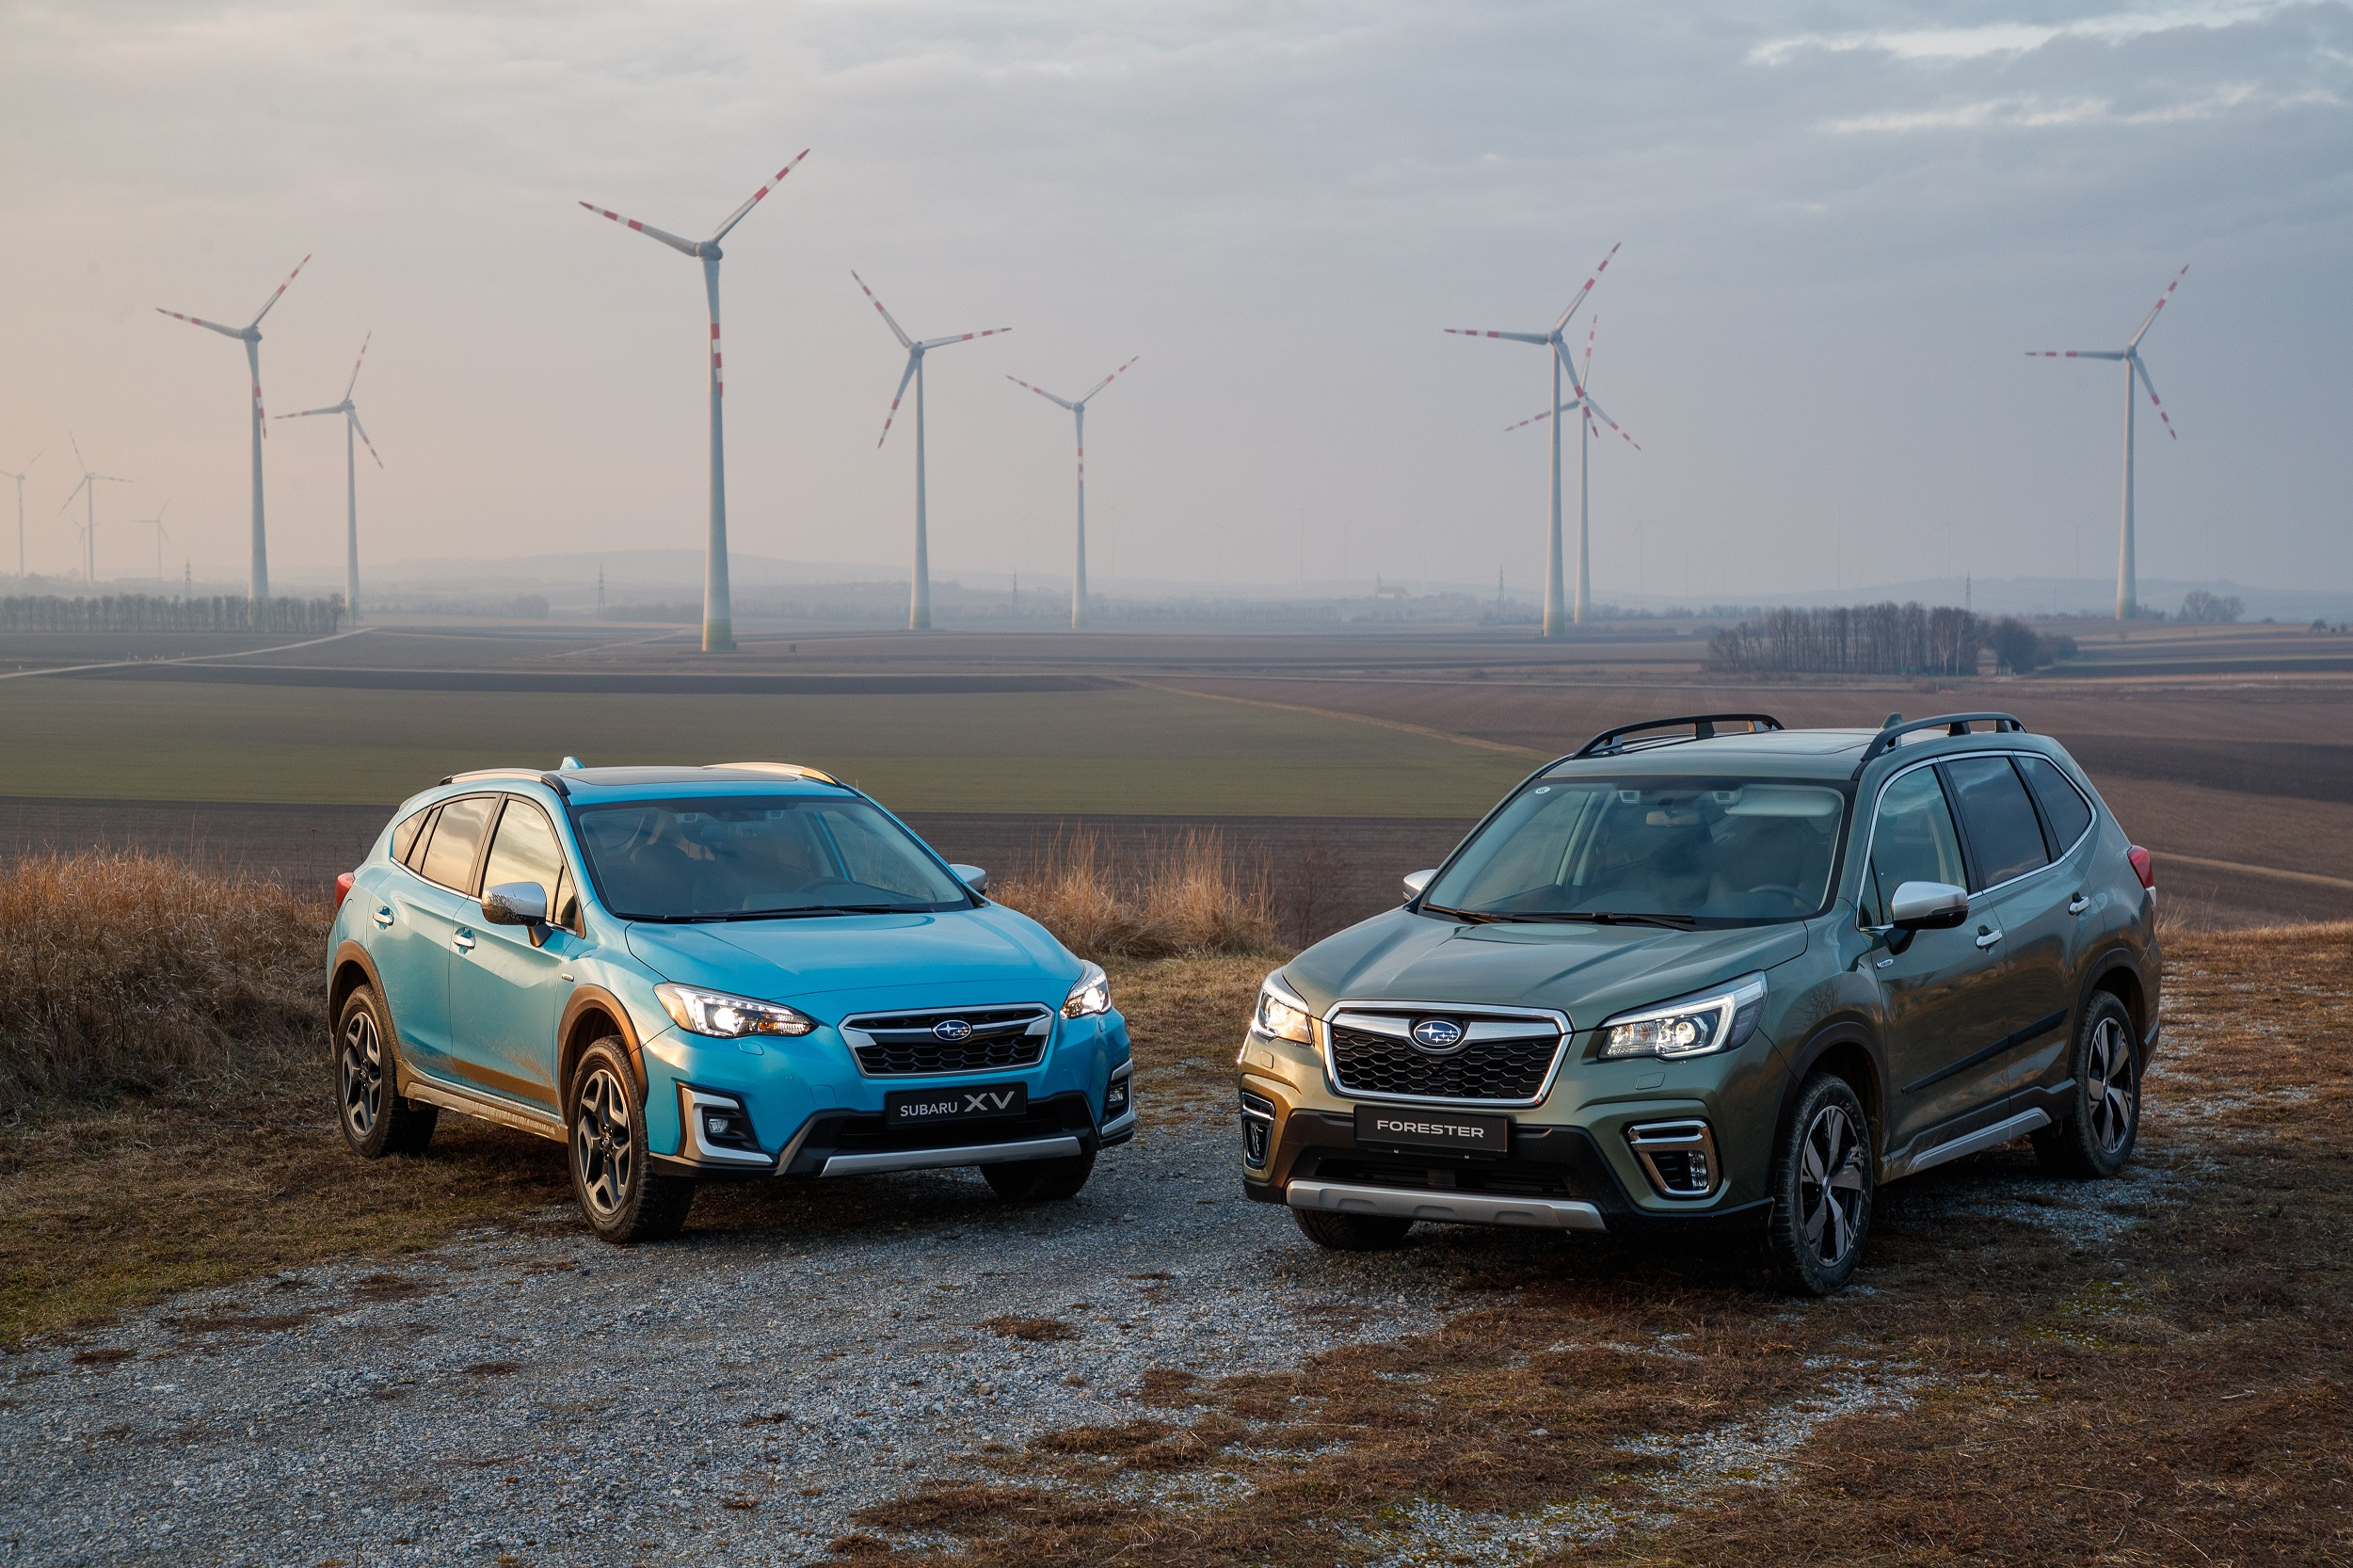 Two new Subaru hybrids to arrive in Ireland in November